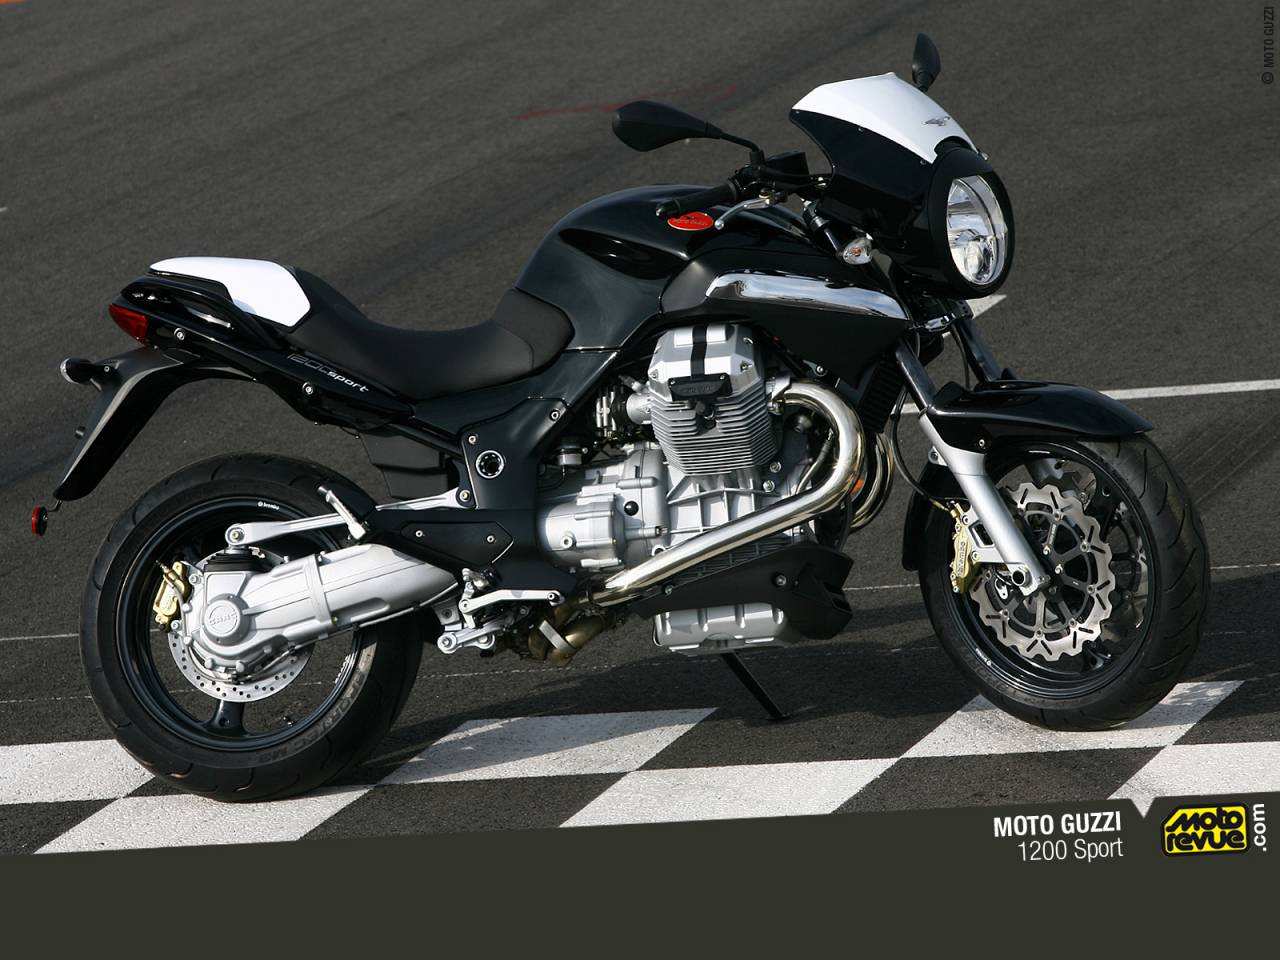 moto guzzi 1200 sport review and photos. Black Bedroom Furniture Sets. Home Design Ideas